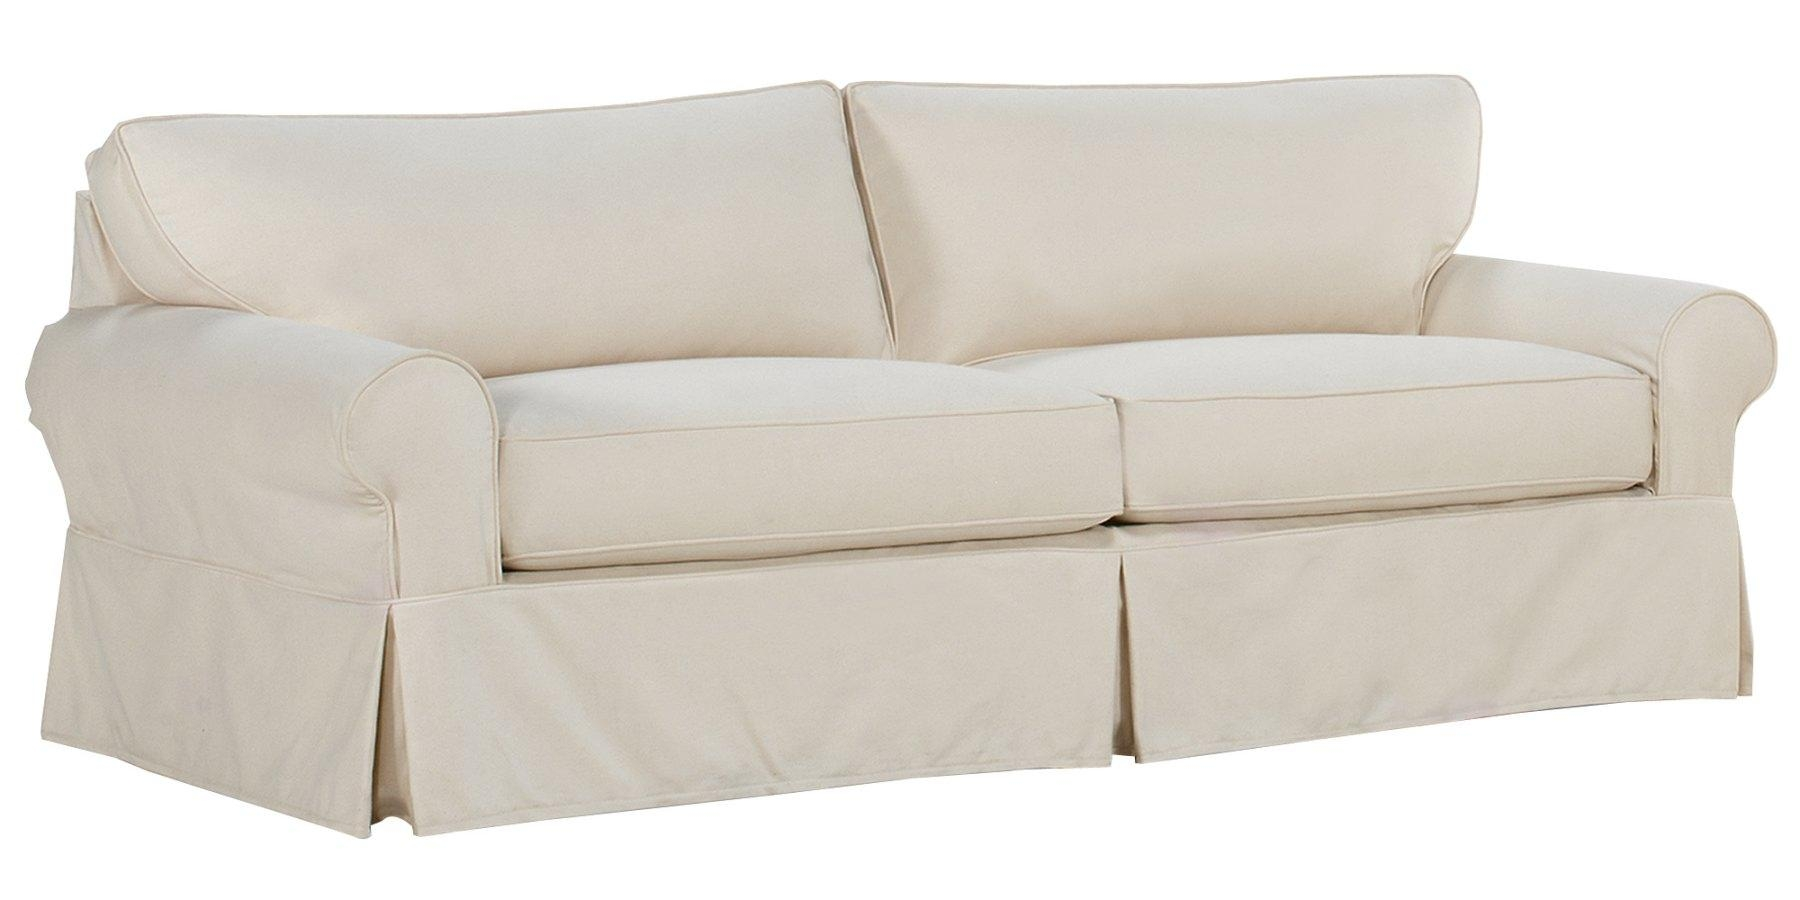 Featured Image of Slipcovers For Sofas And Chairs